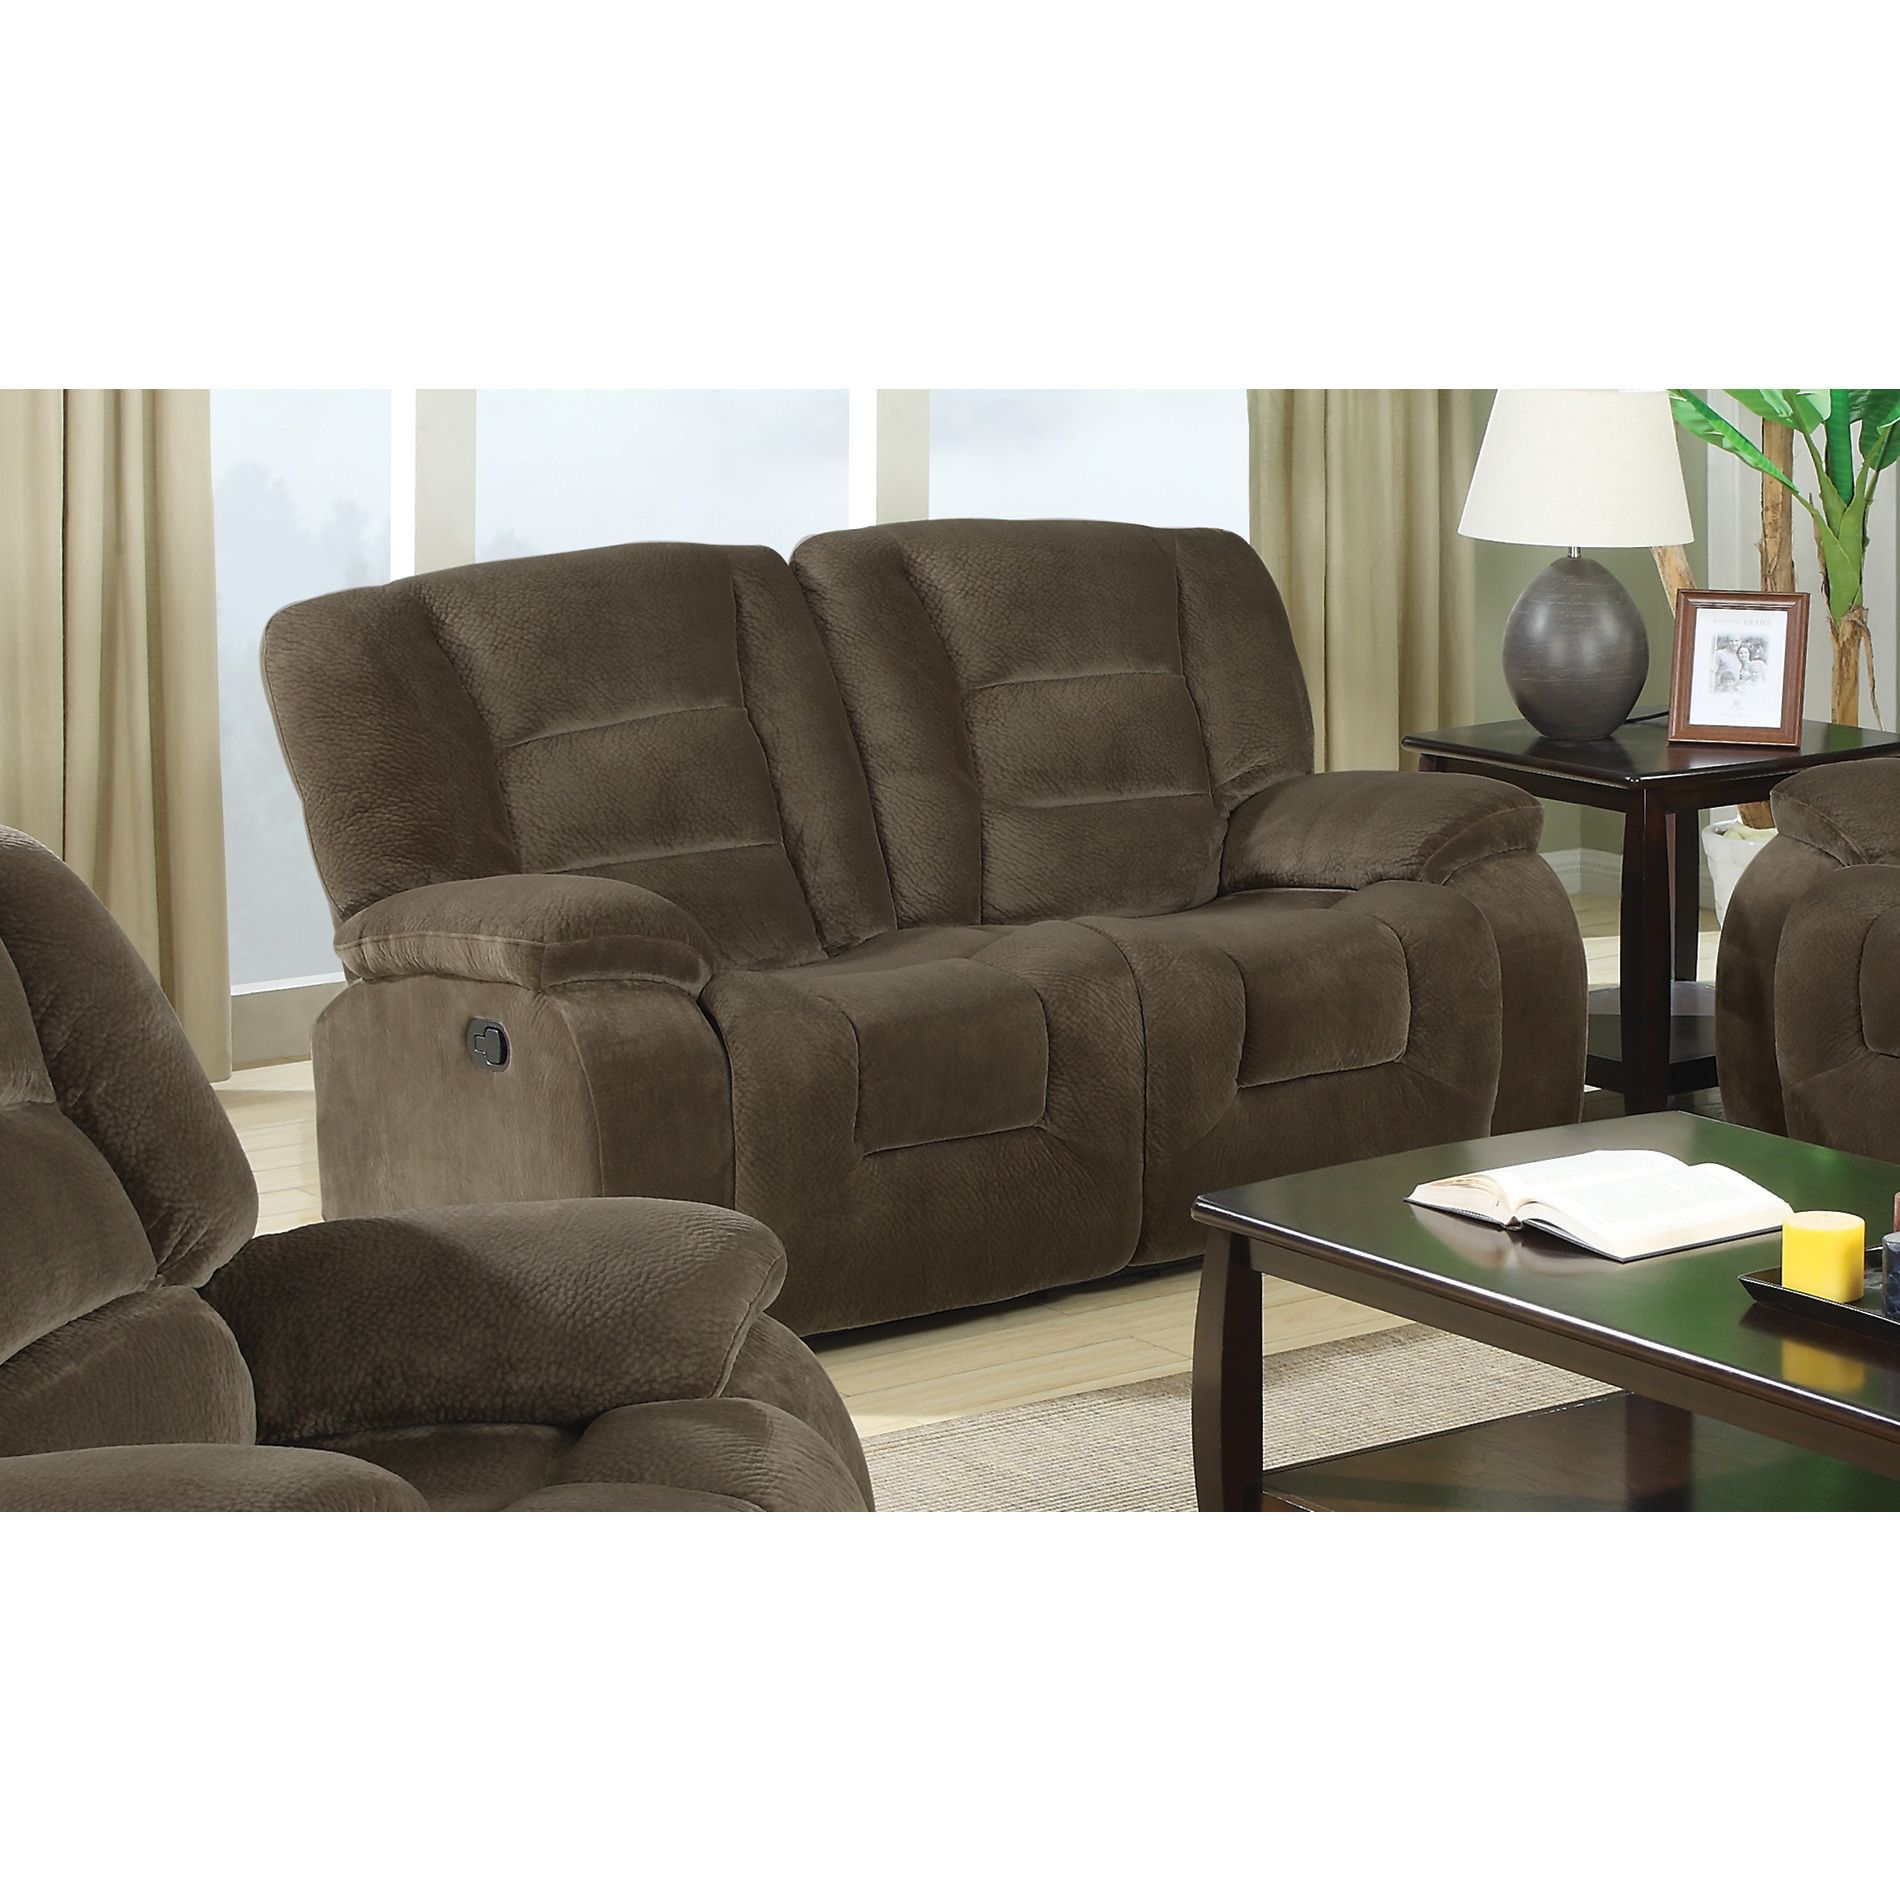 loveseat sofa center set for with furniture console of attachment glamour flexsteel reclining minimalist